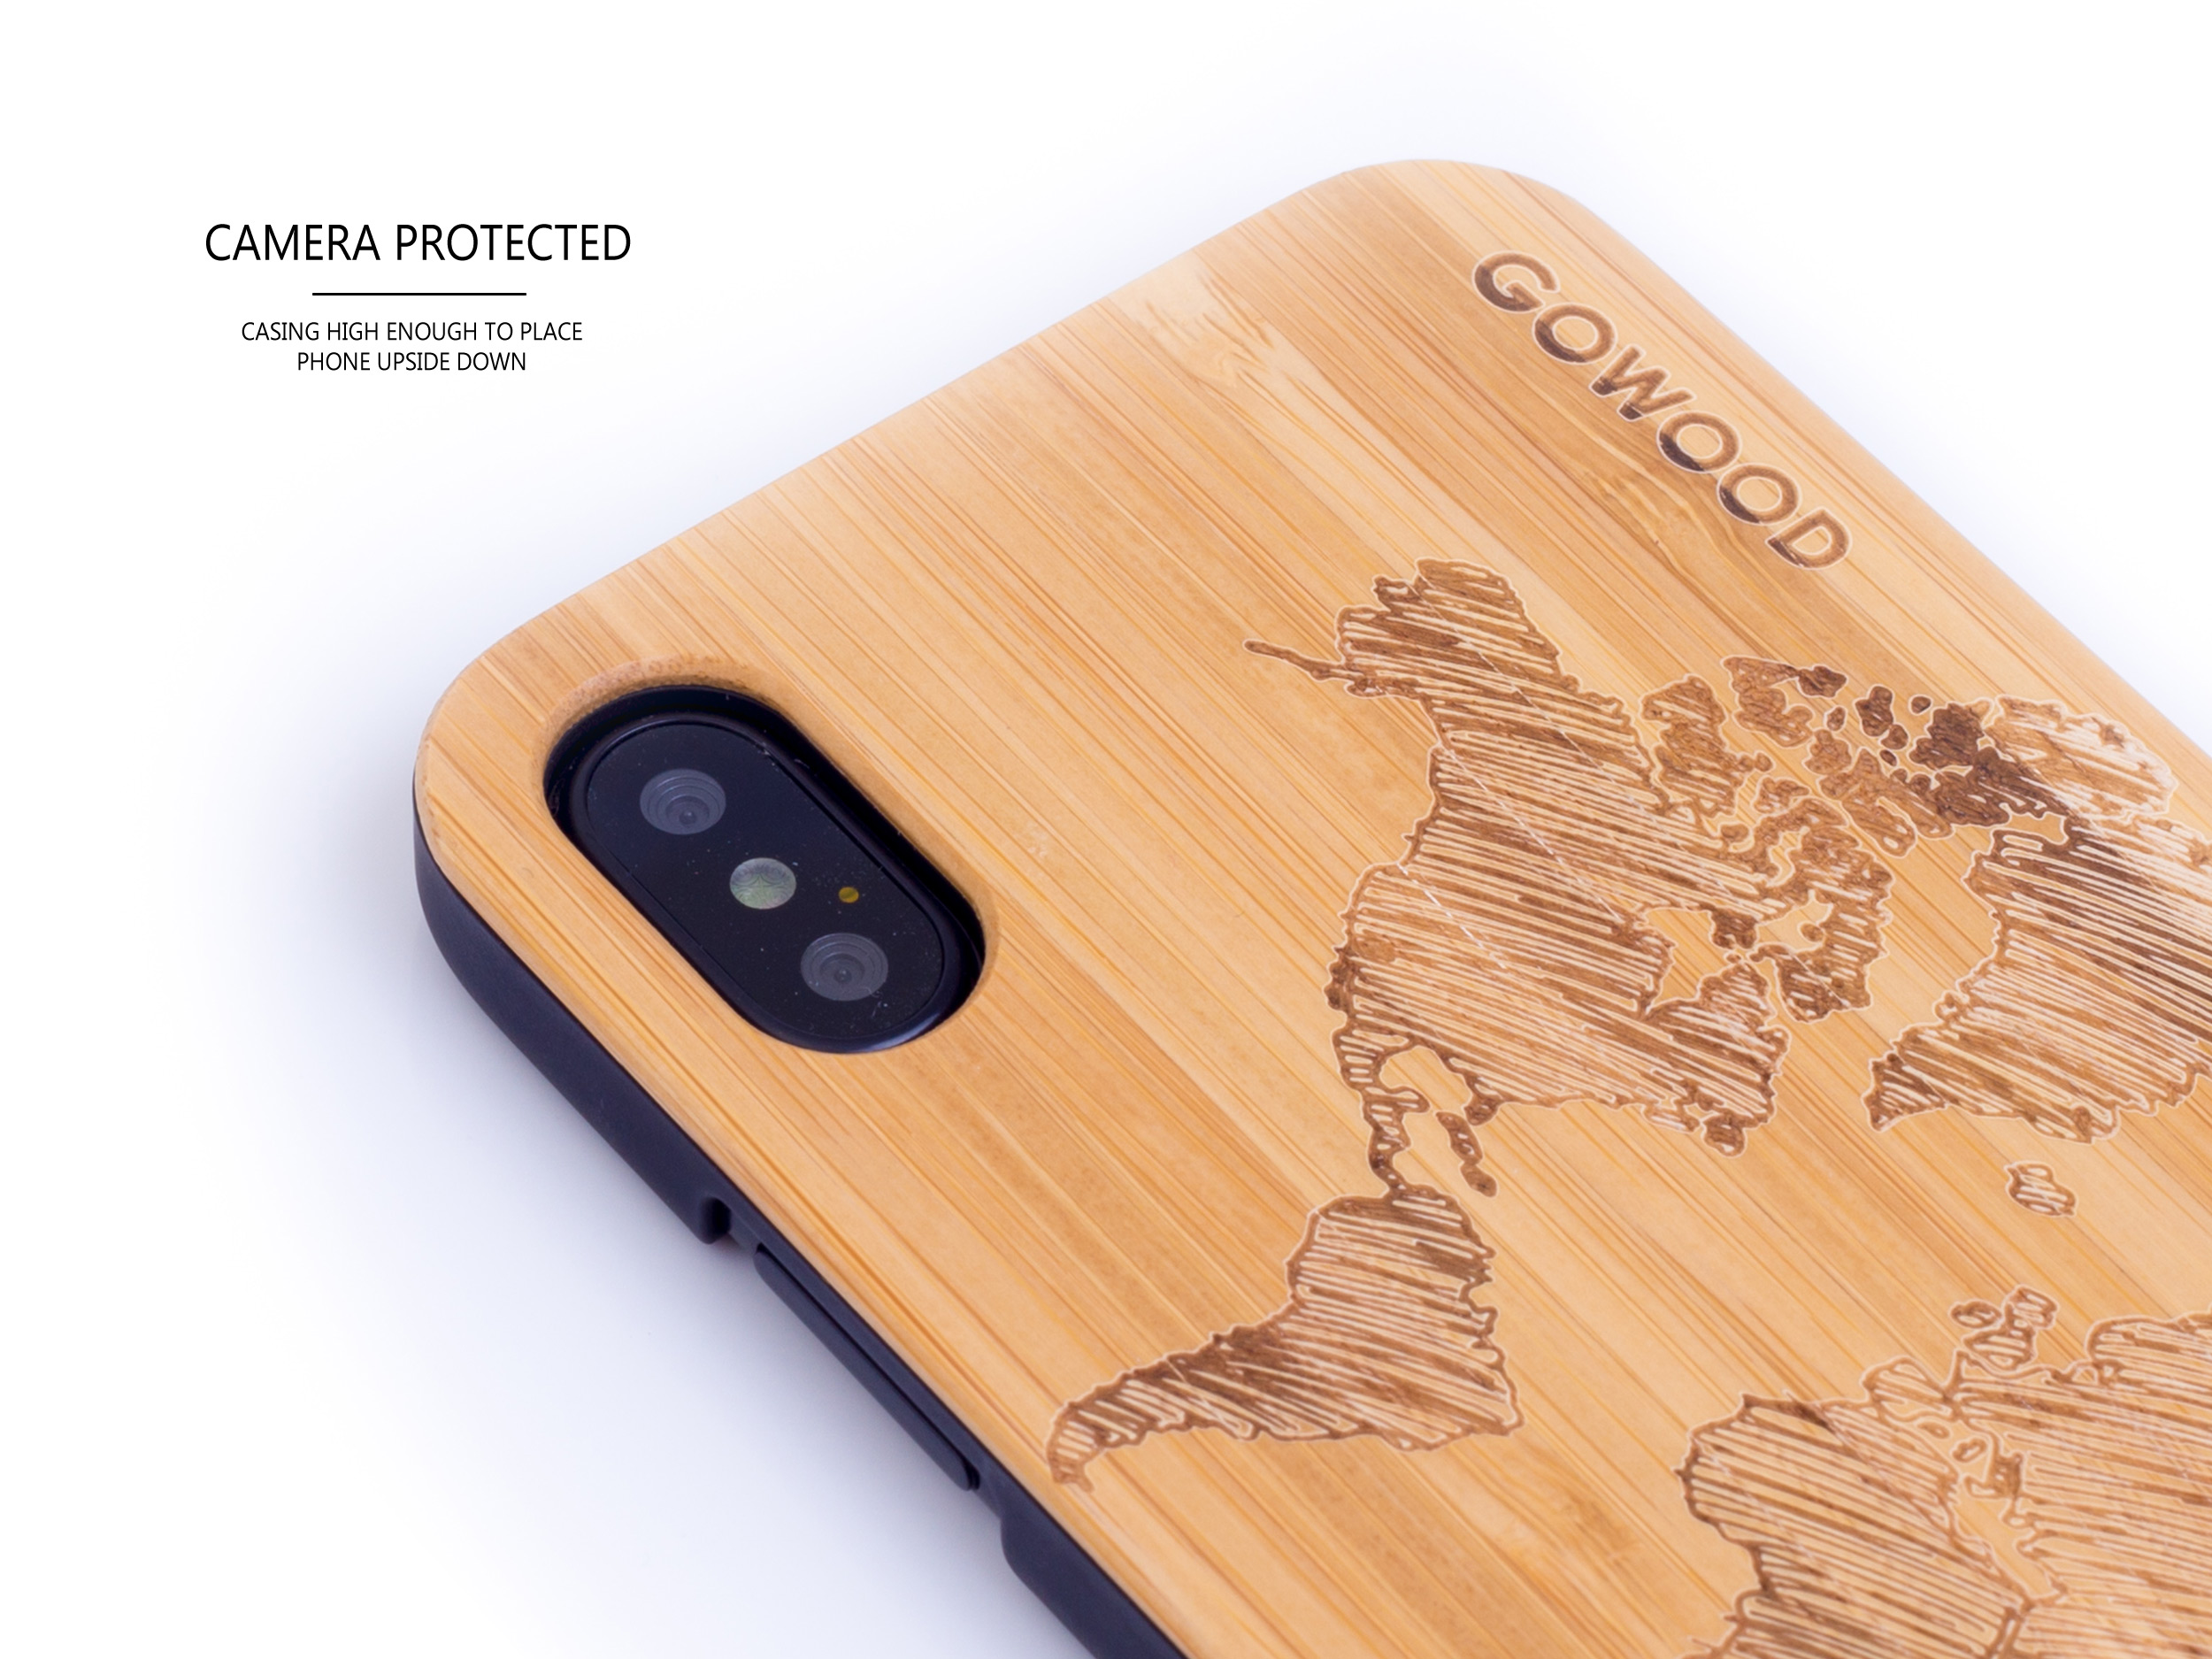 étui iPhone X en bois bambou carte du monde camera